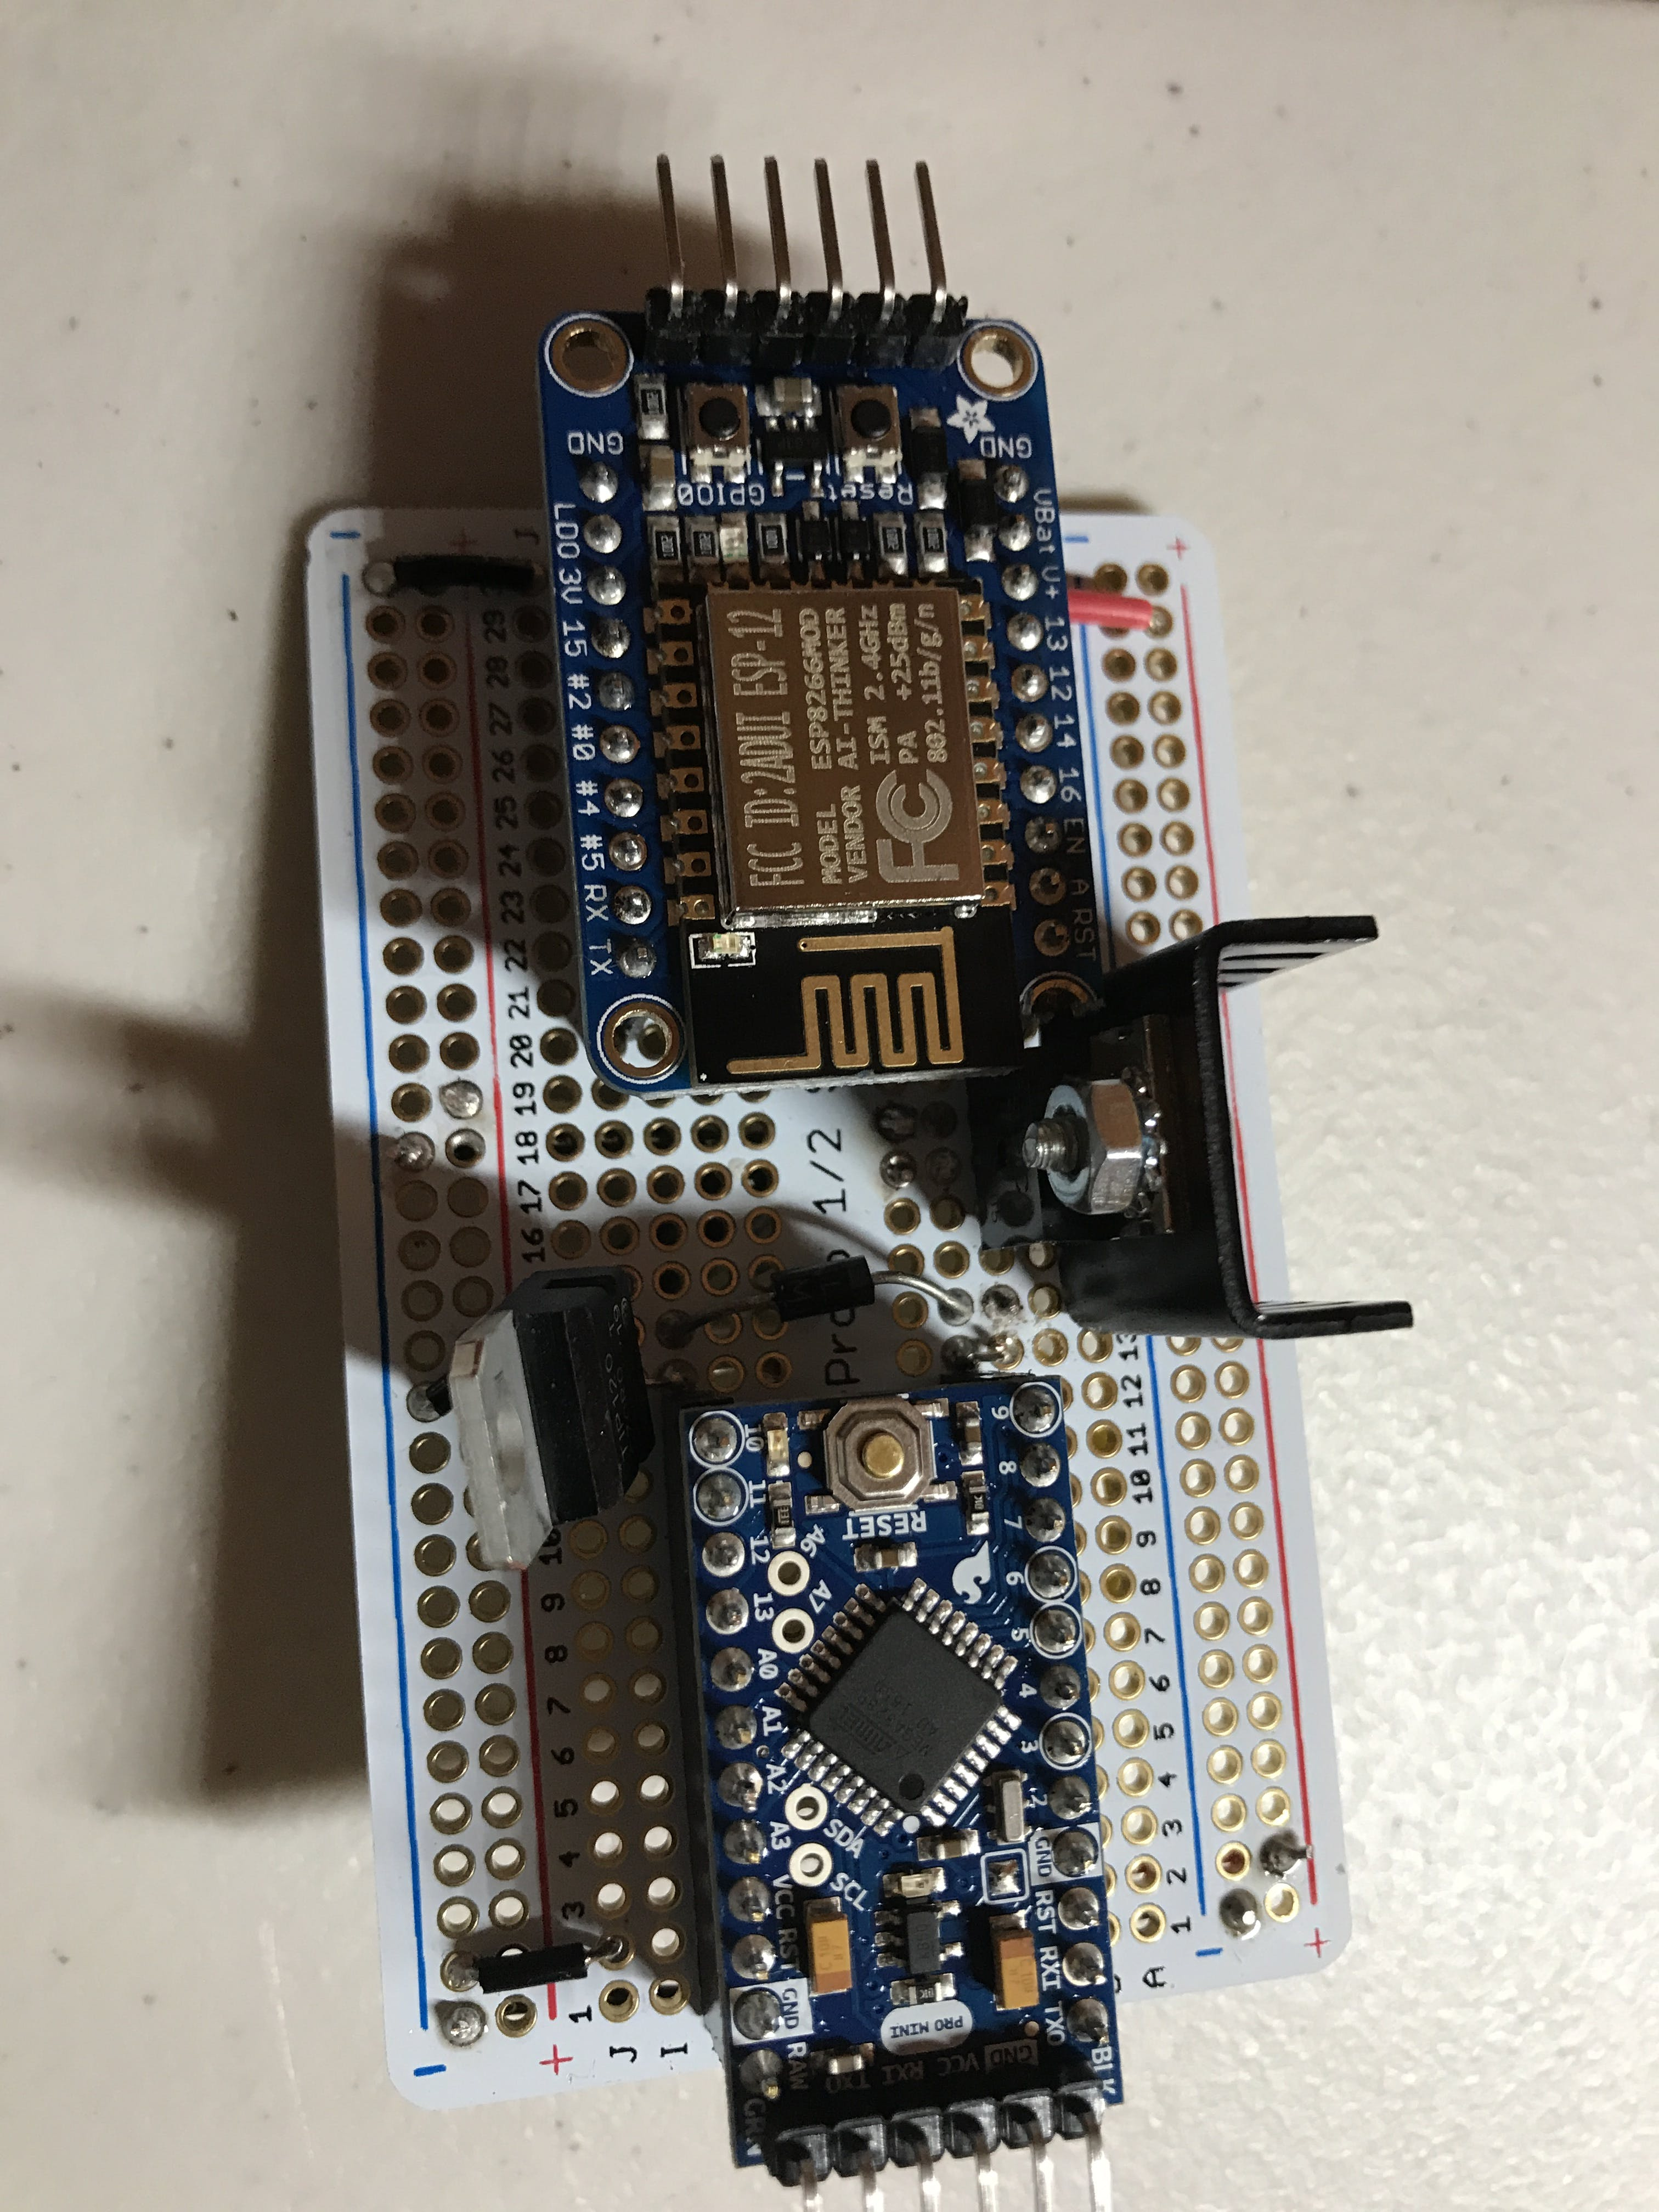 Huzzah and Arduino Pro Mini (note - I switched the Huzzah Breakout with a Adafruit Huzzah Feather later in the build)